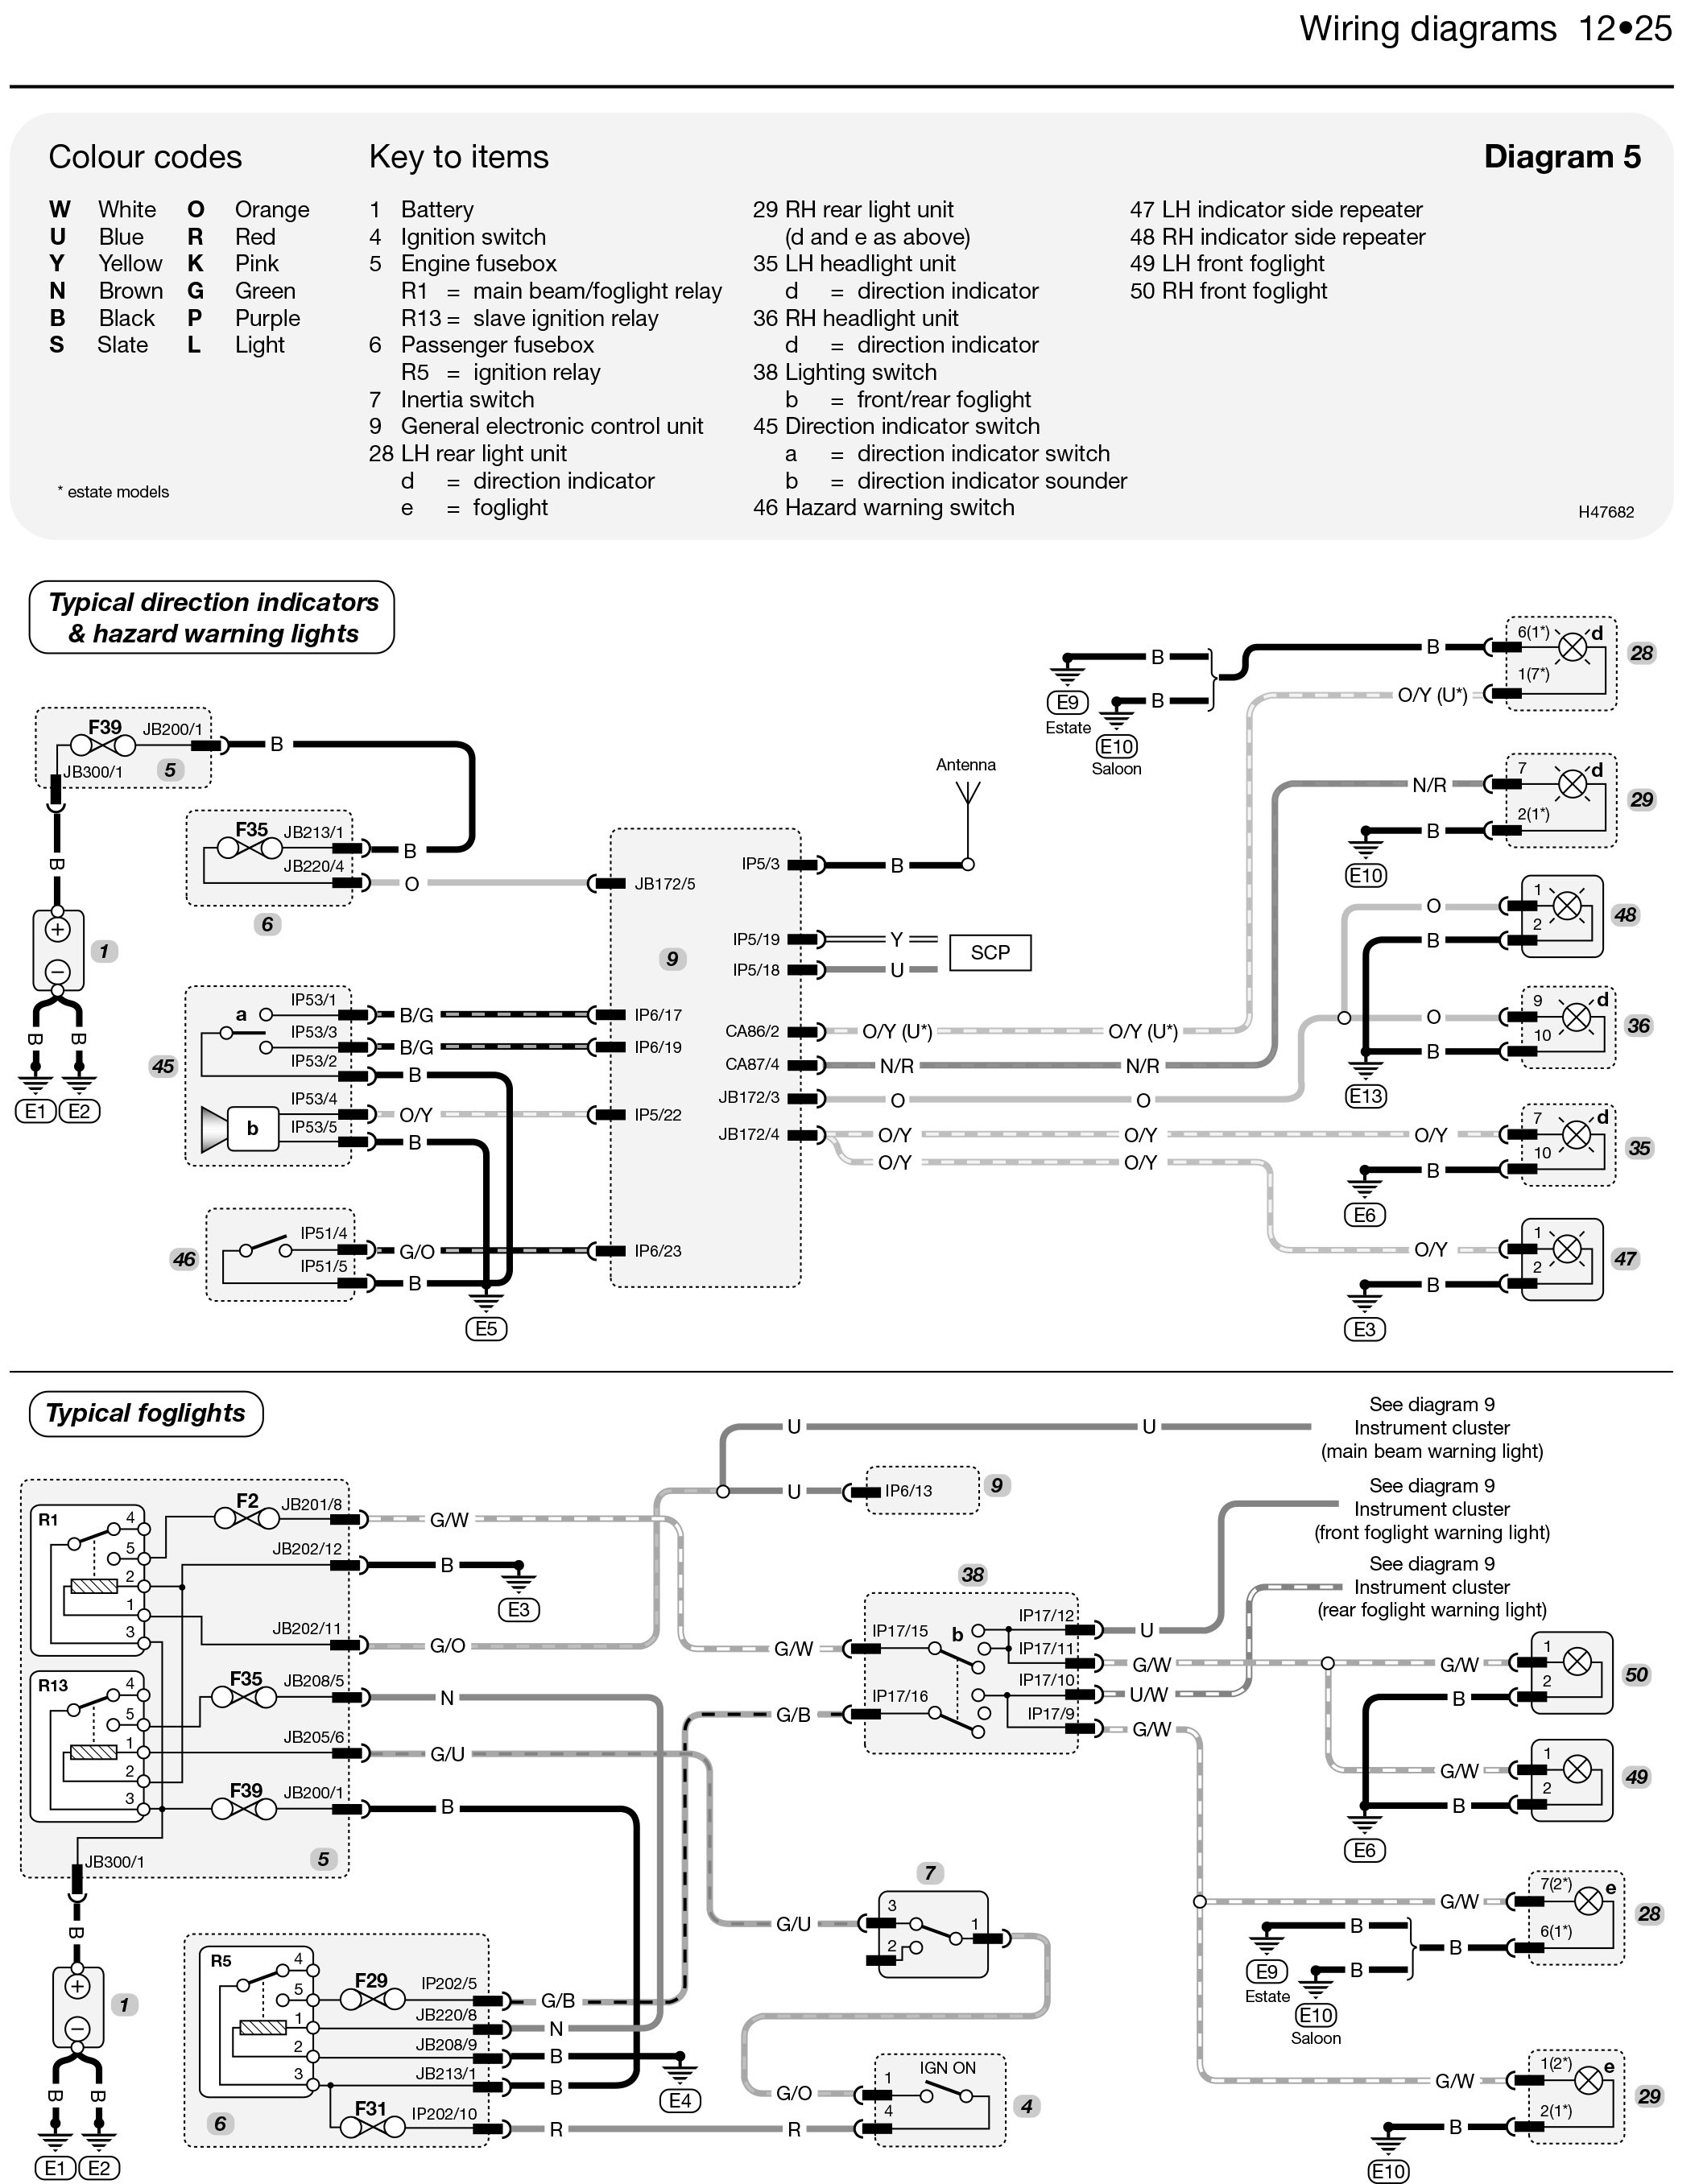 Jaguar Wiring Diagram from static-resources.imageservice.cloud